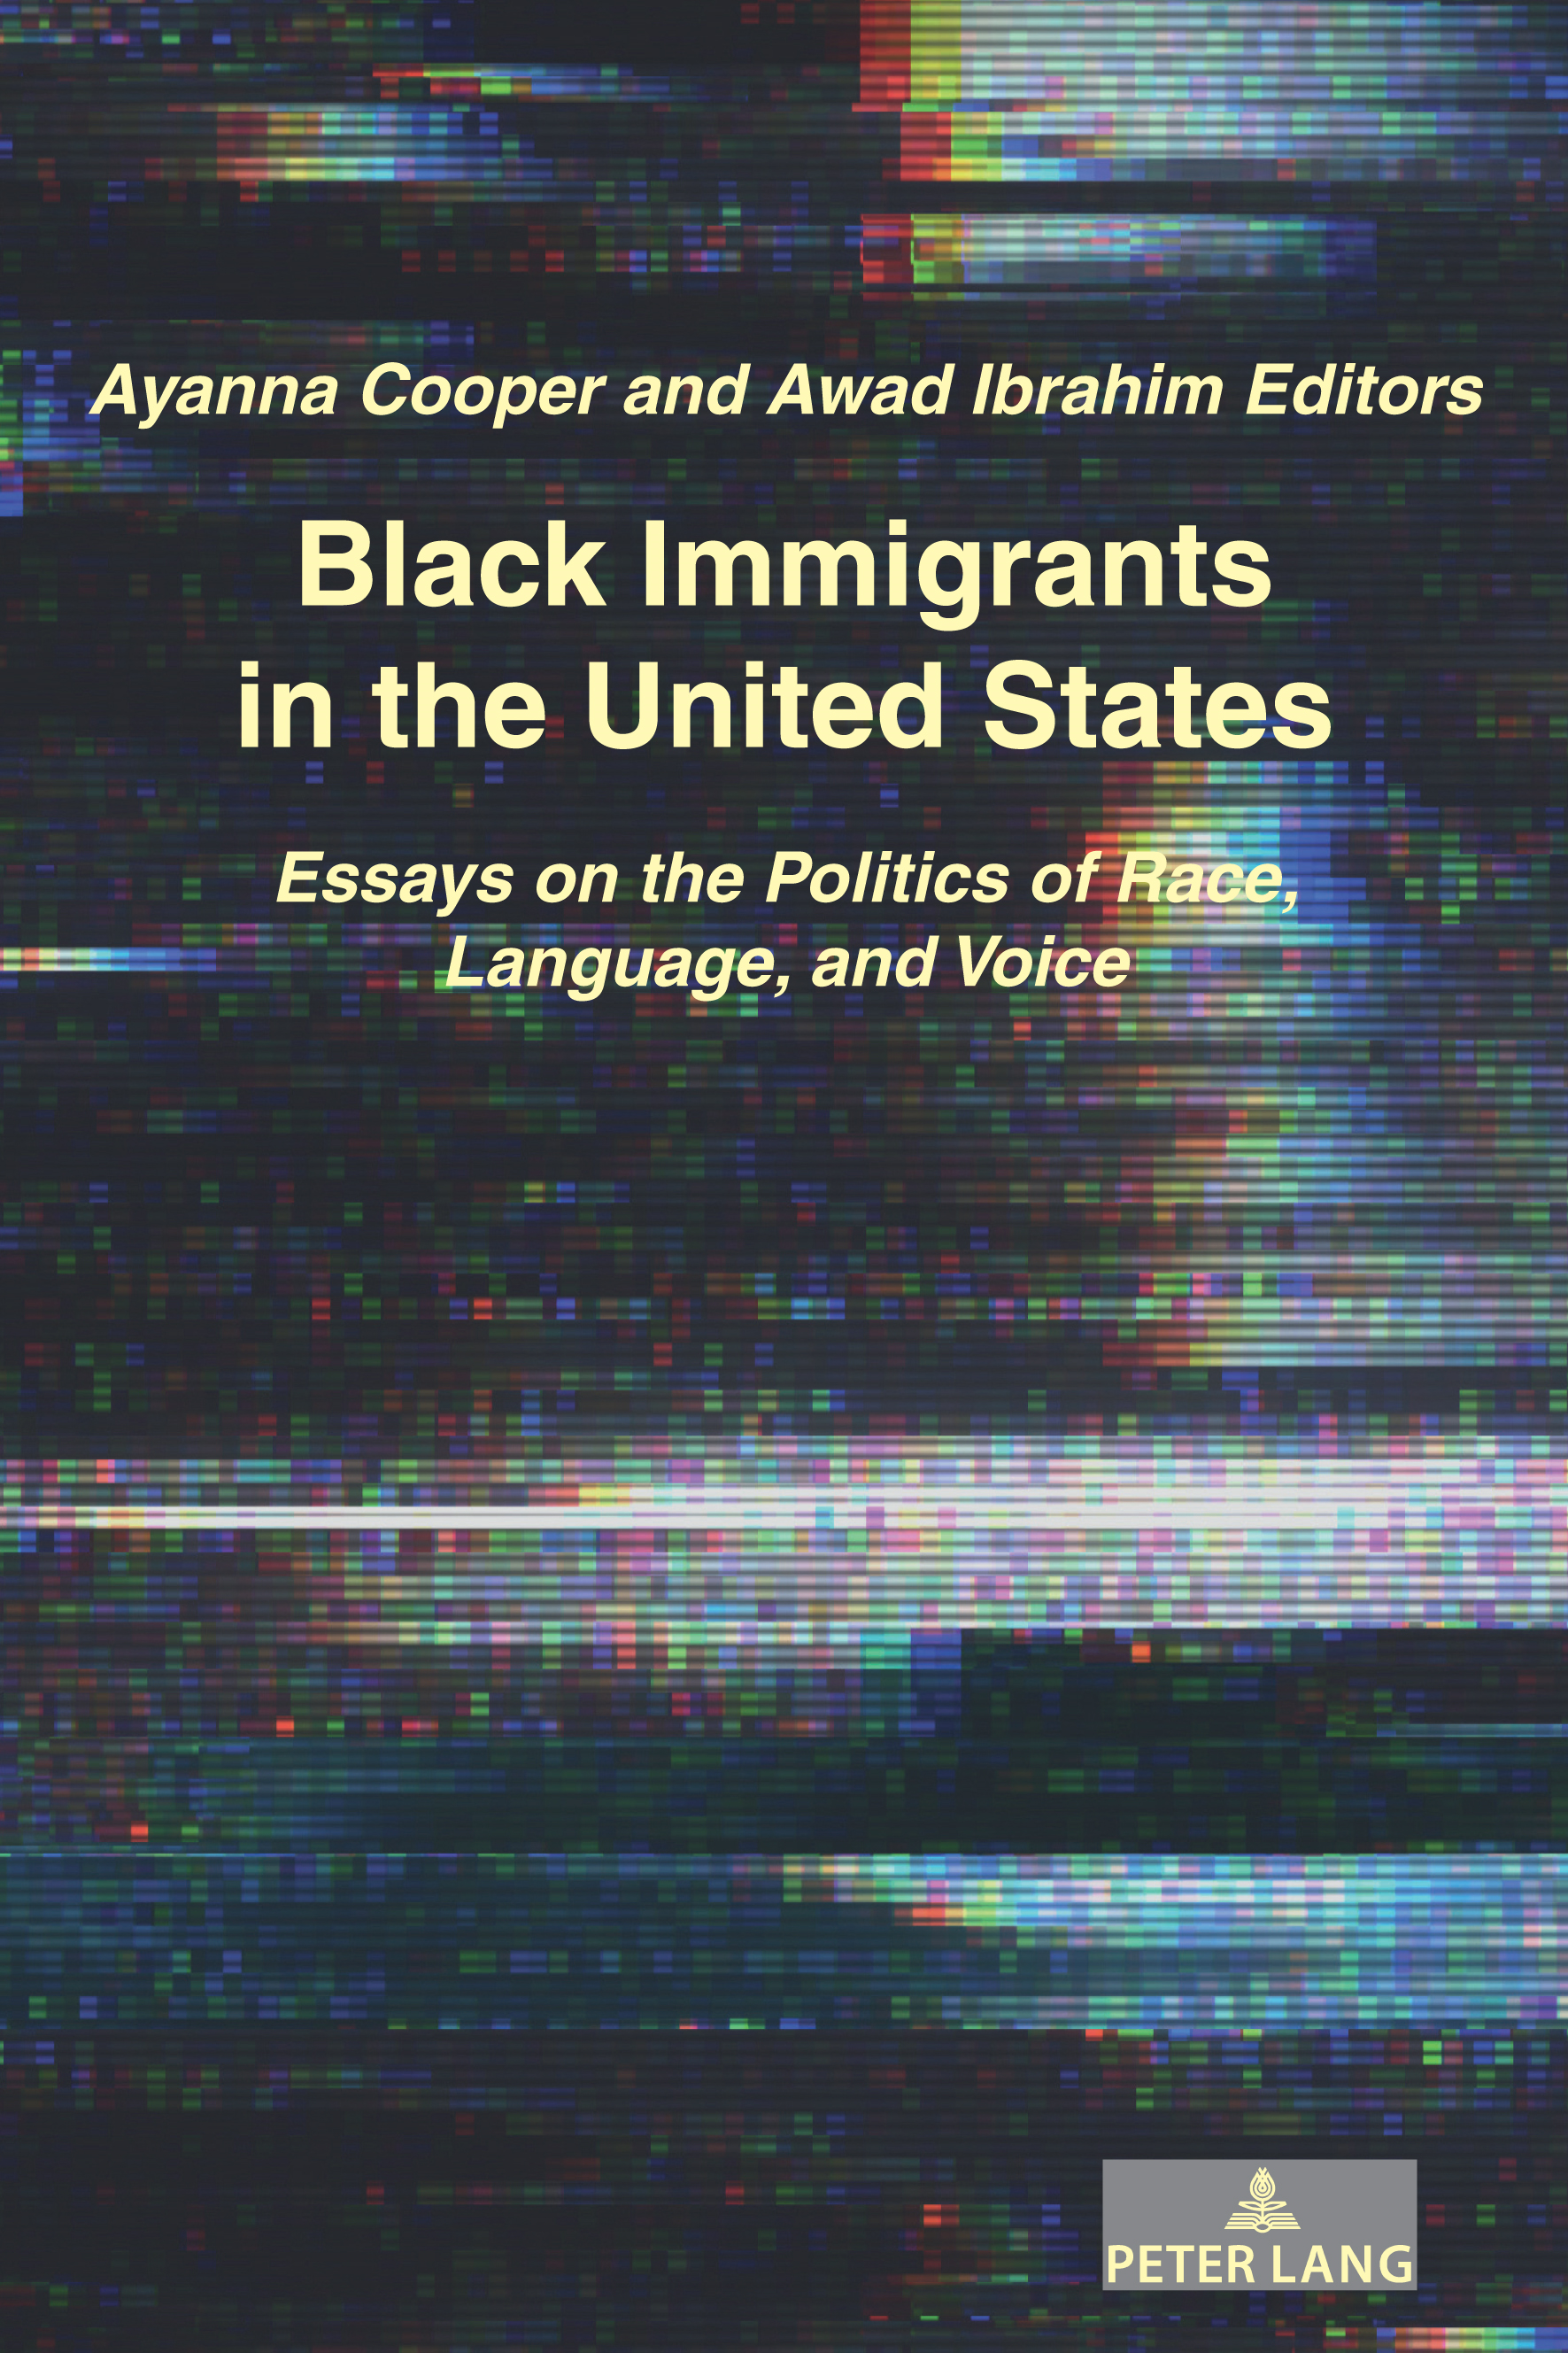 Black Immigrants in the United States